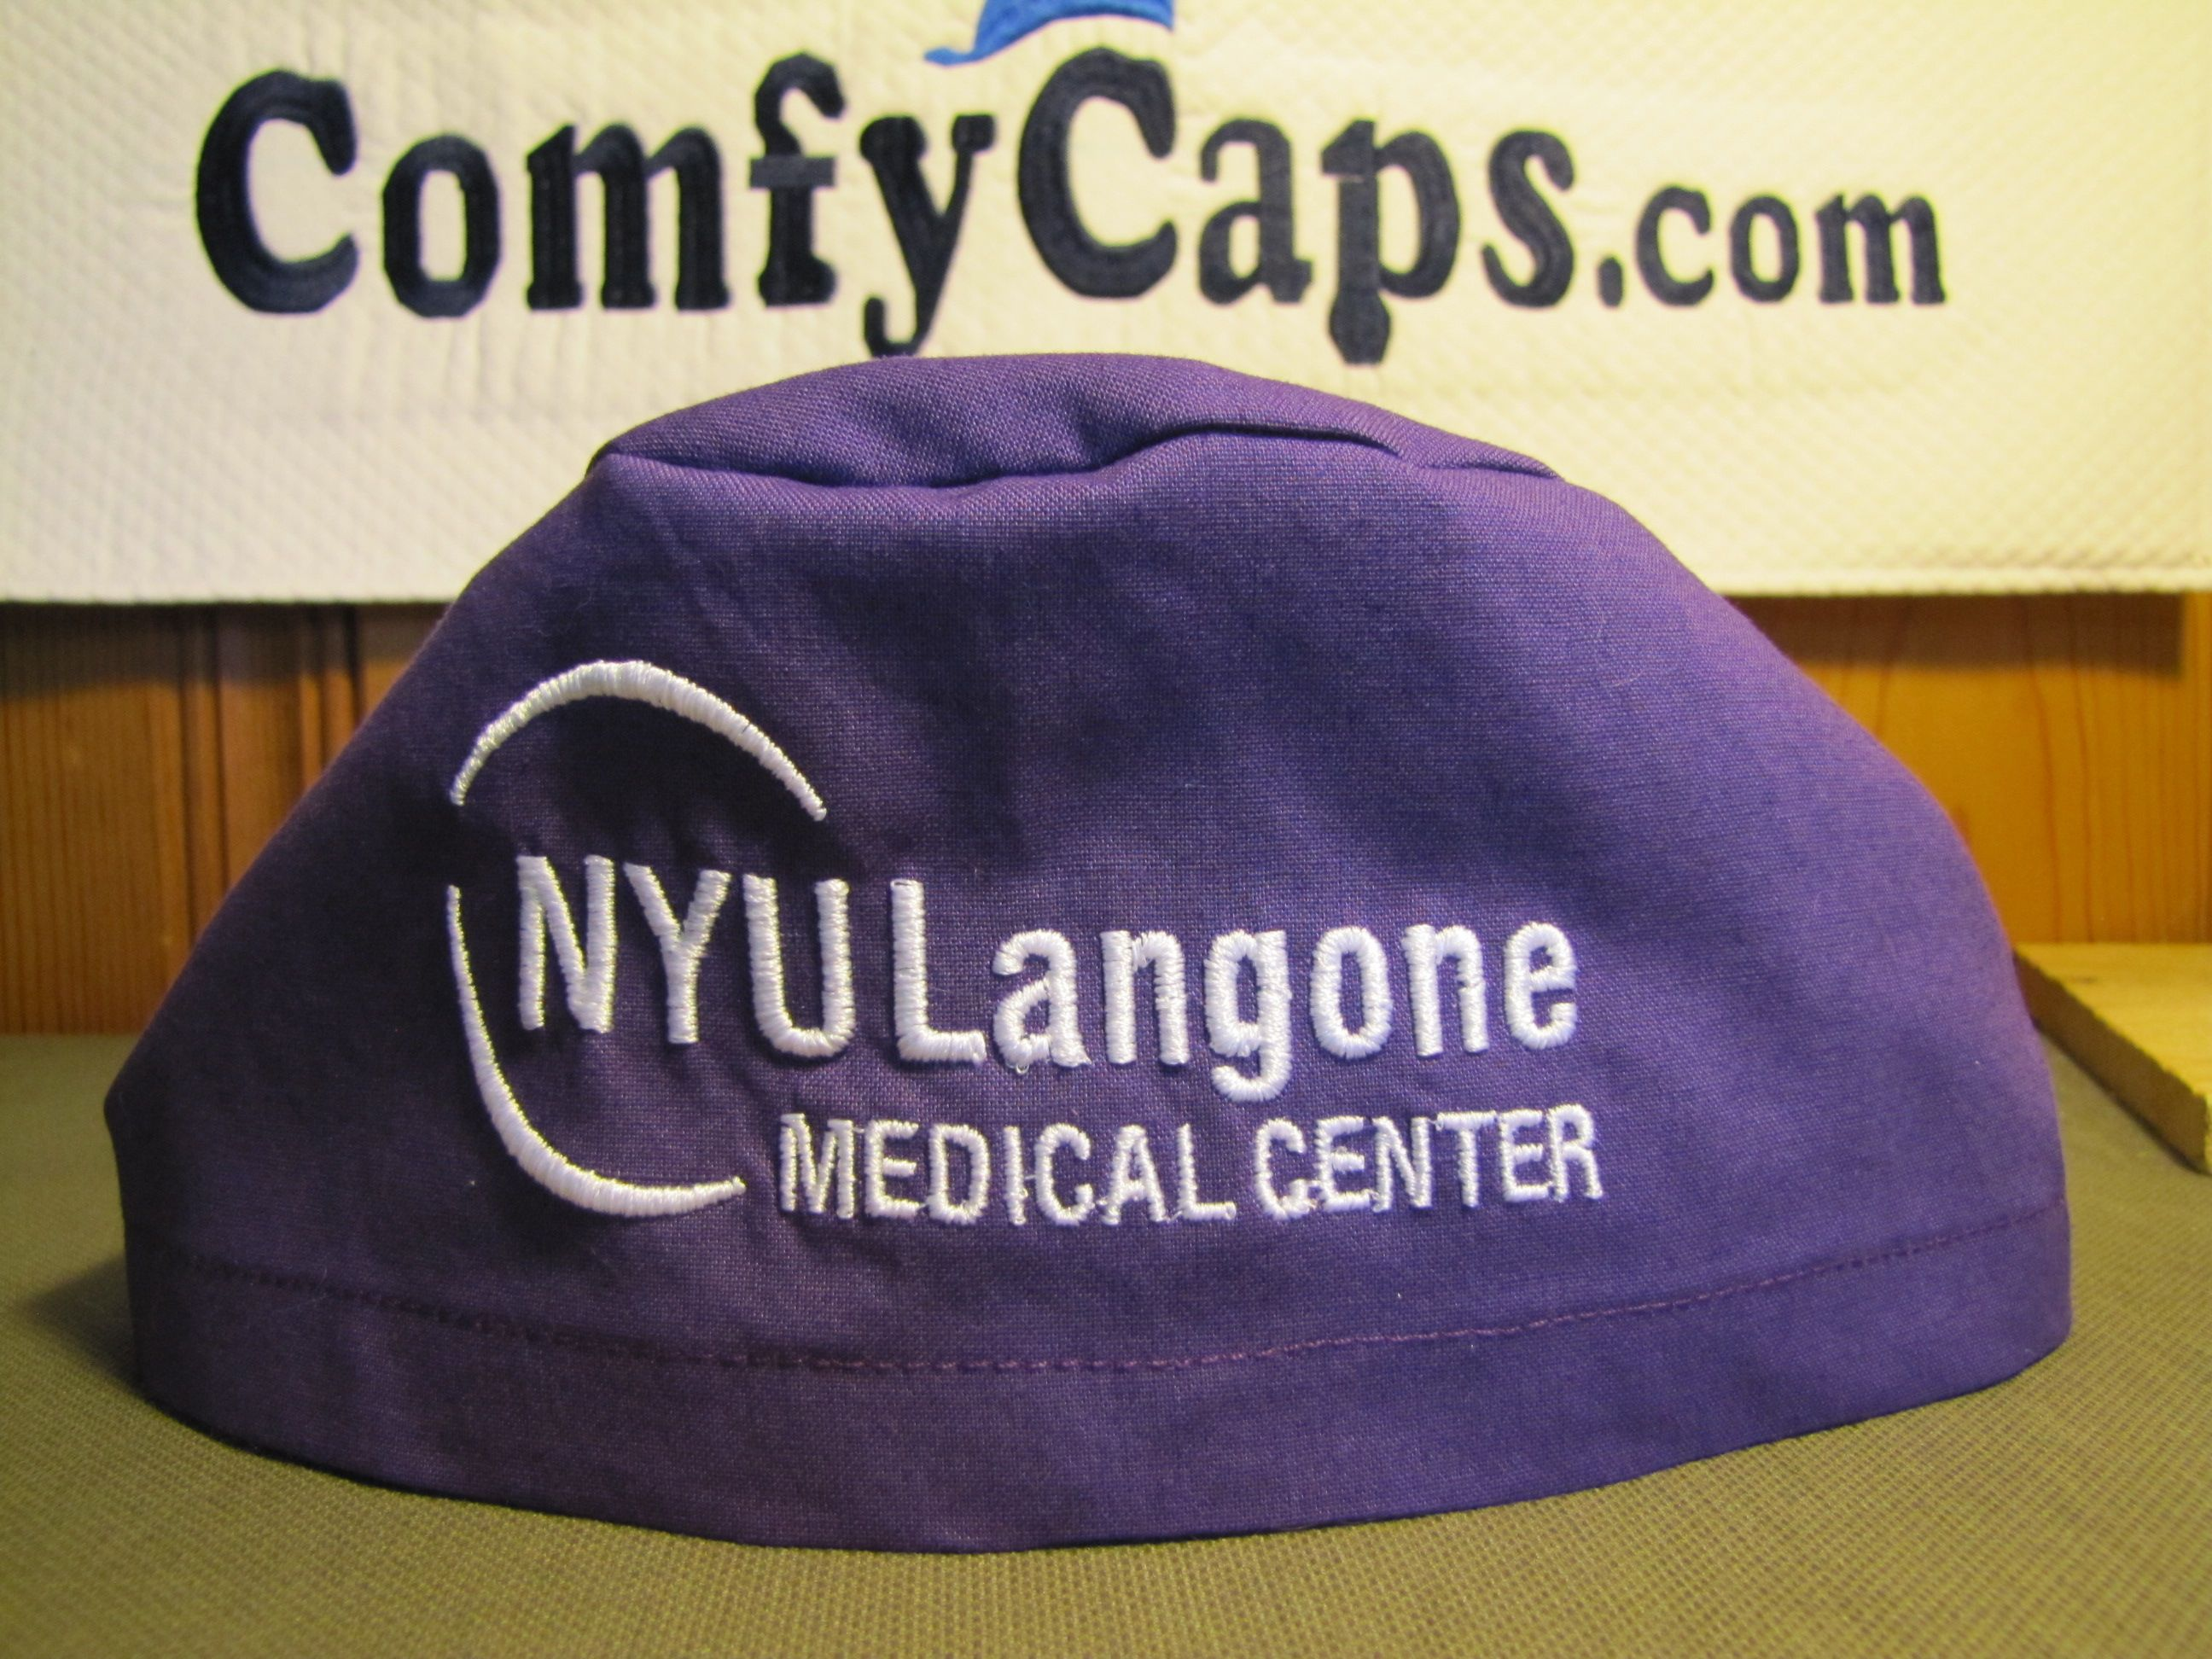 NYU Langone Medical Center logo embroidered on a Comfycaps